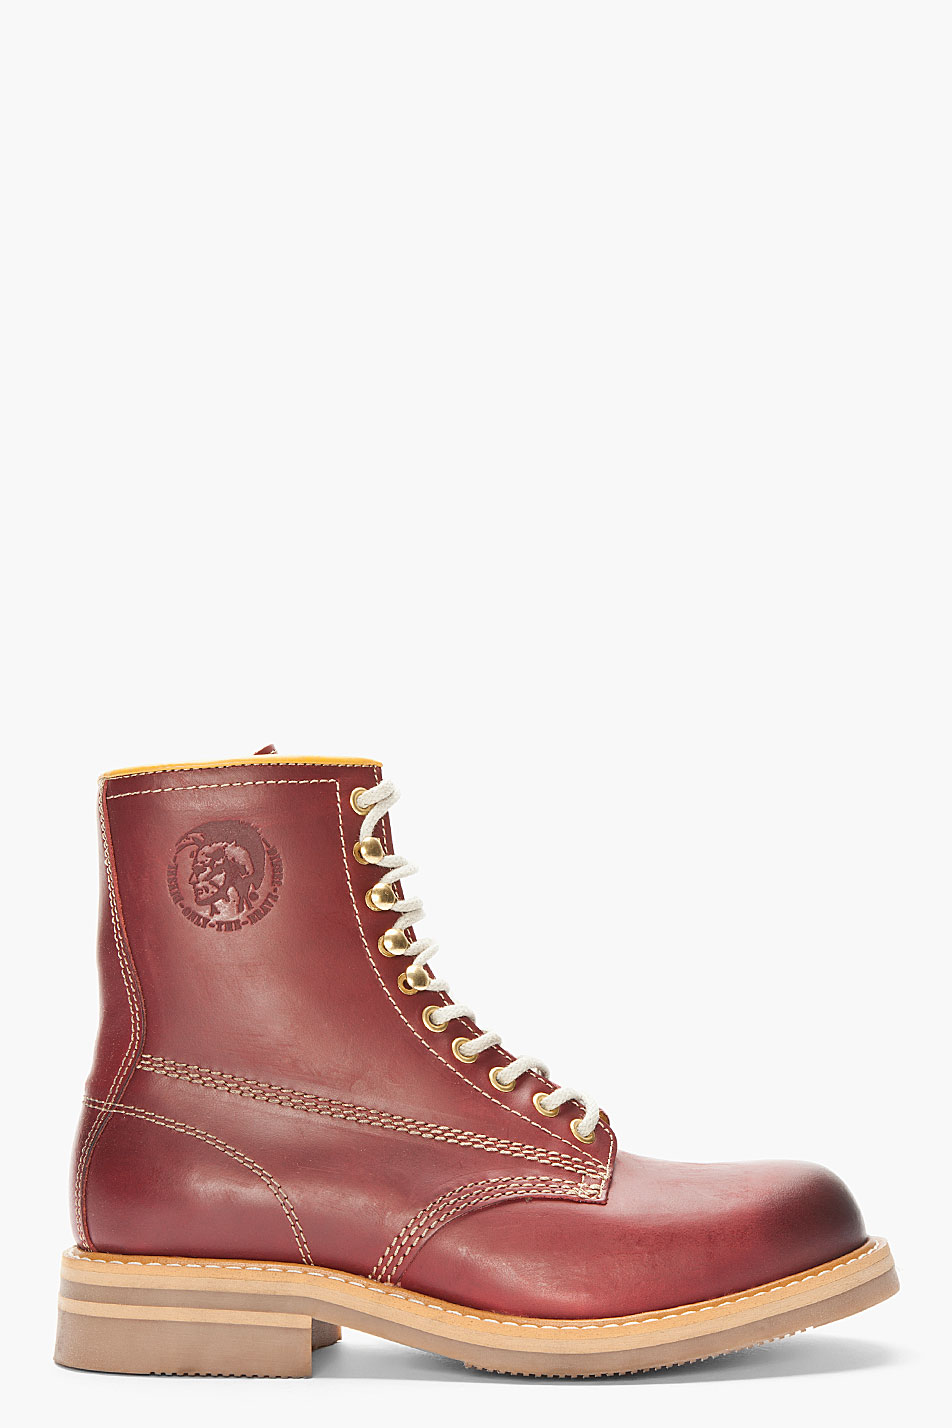 Diesel Burgundy Leather Skillo Boots In Red For Men Lyst